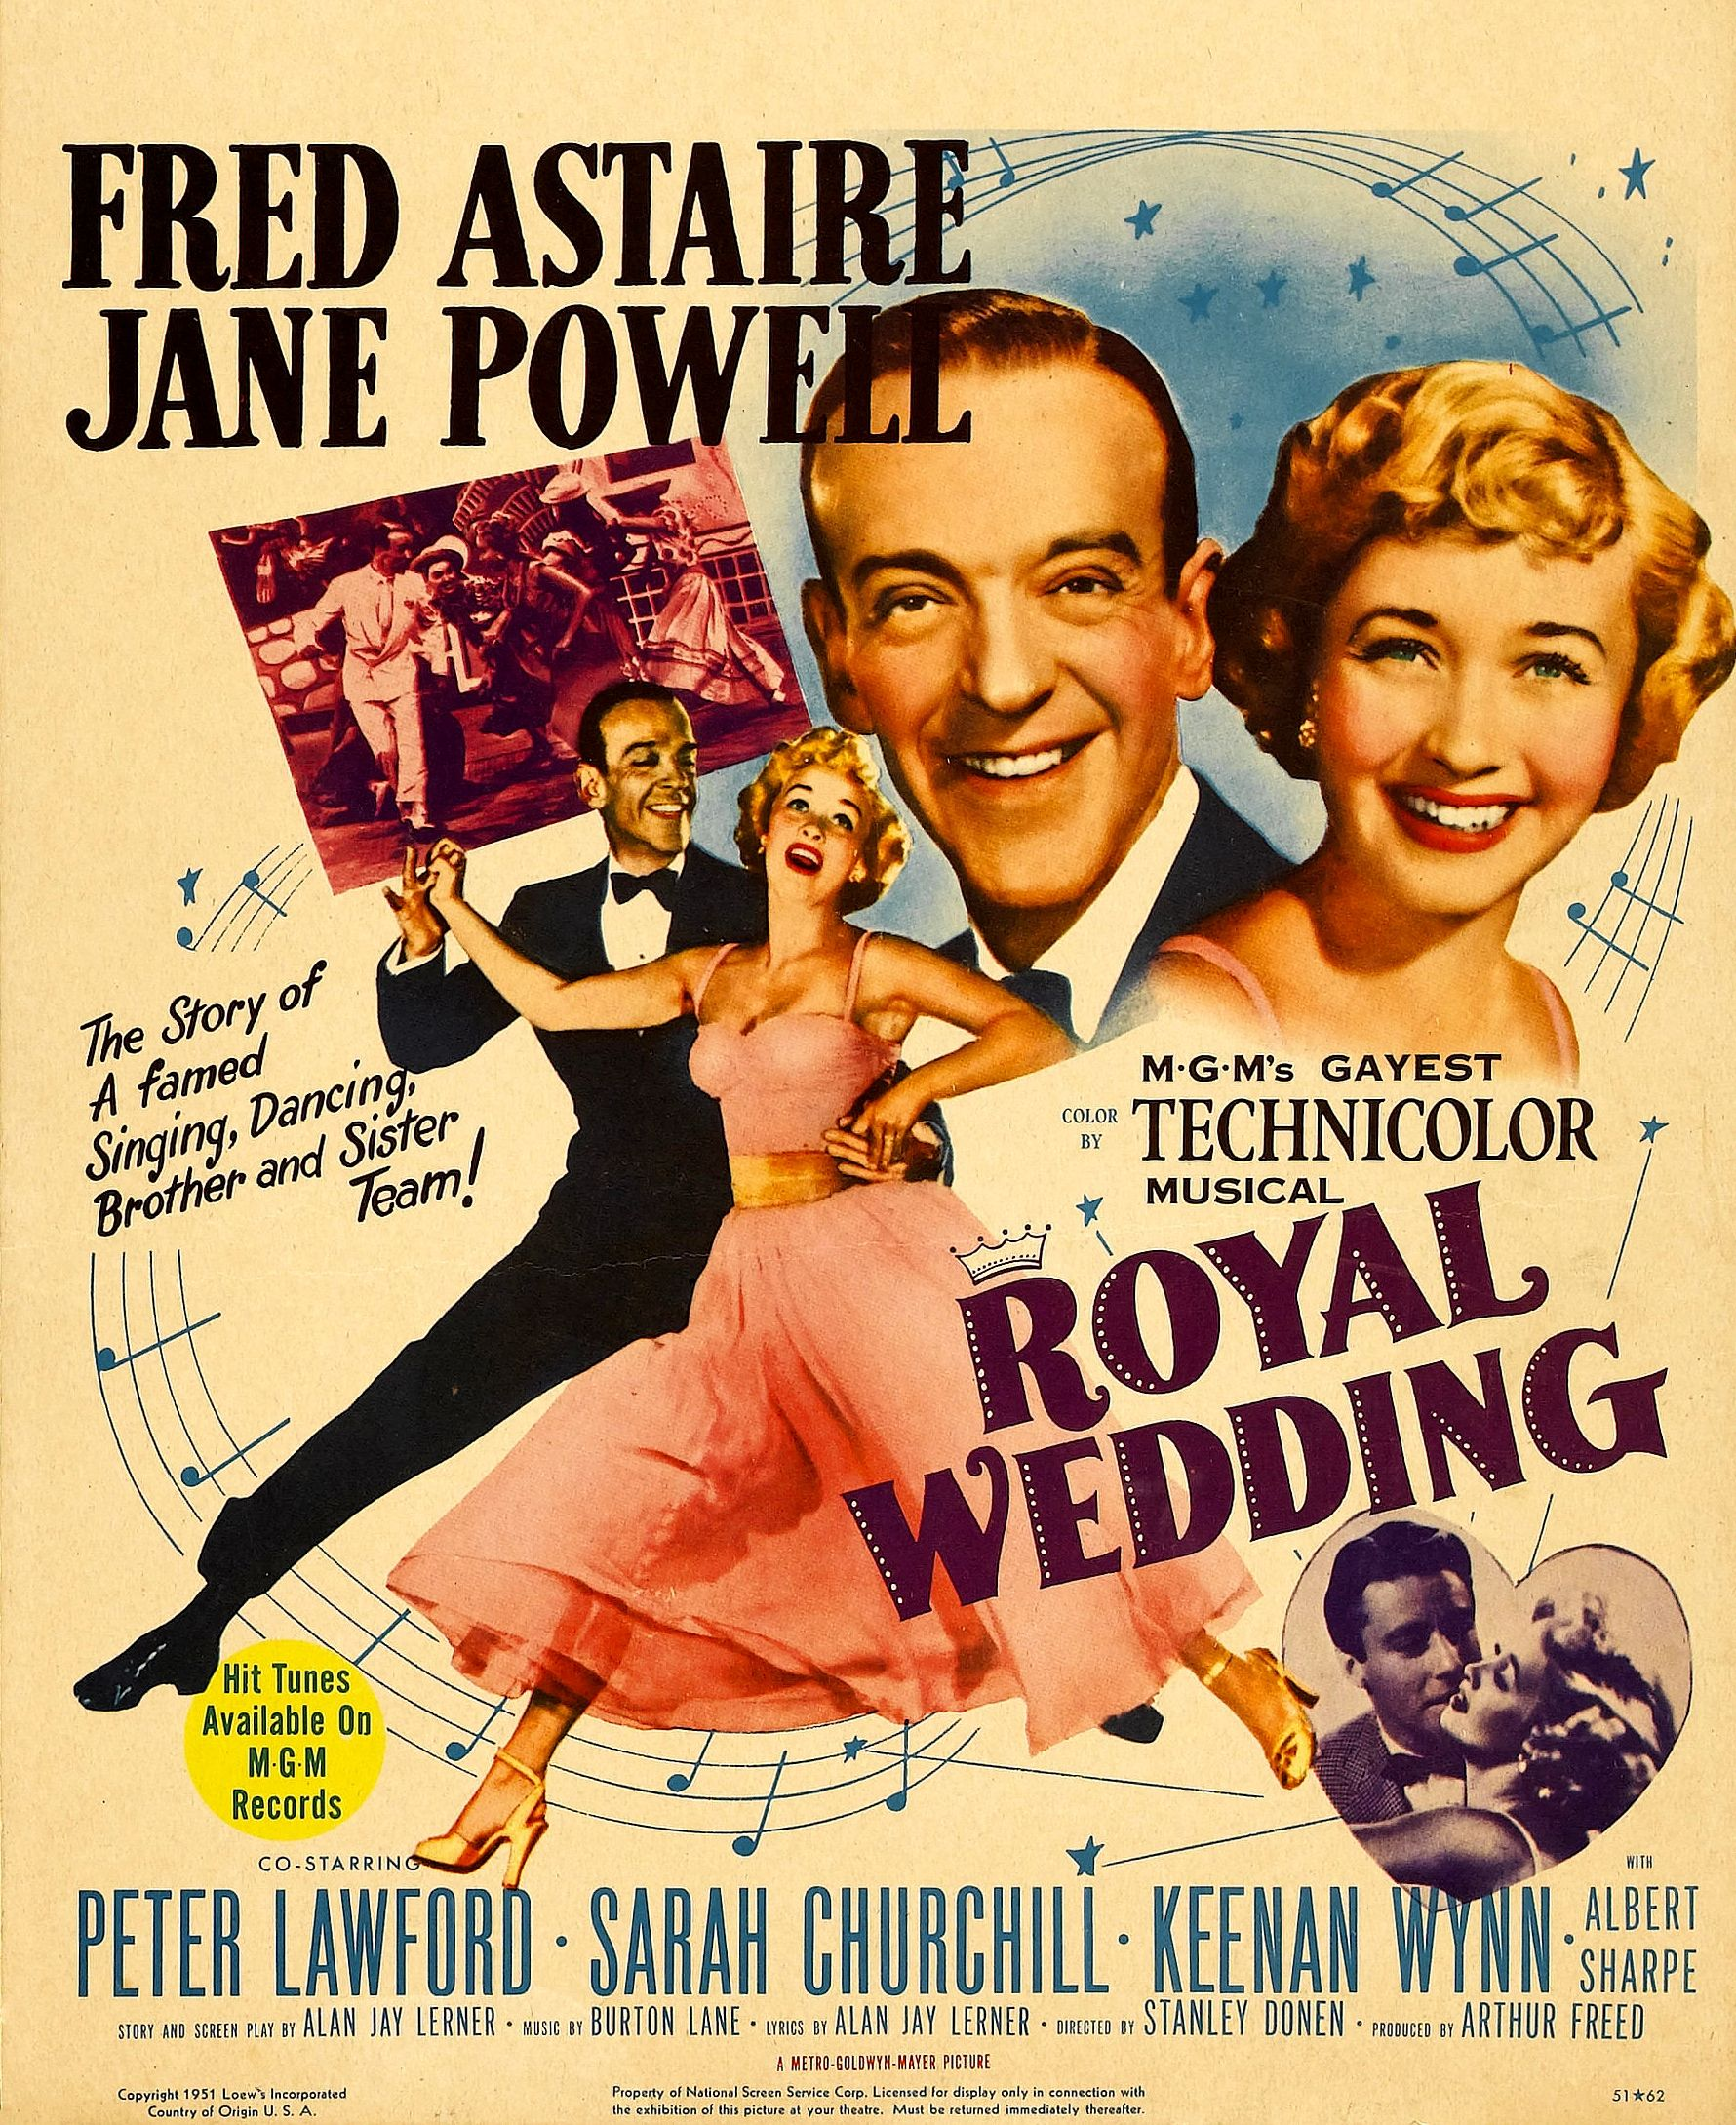 Stanley Donens Musical Royal Wedding  Starring Fred Astaire And Jane